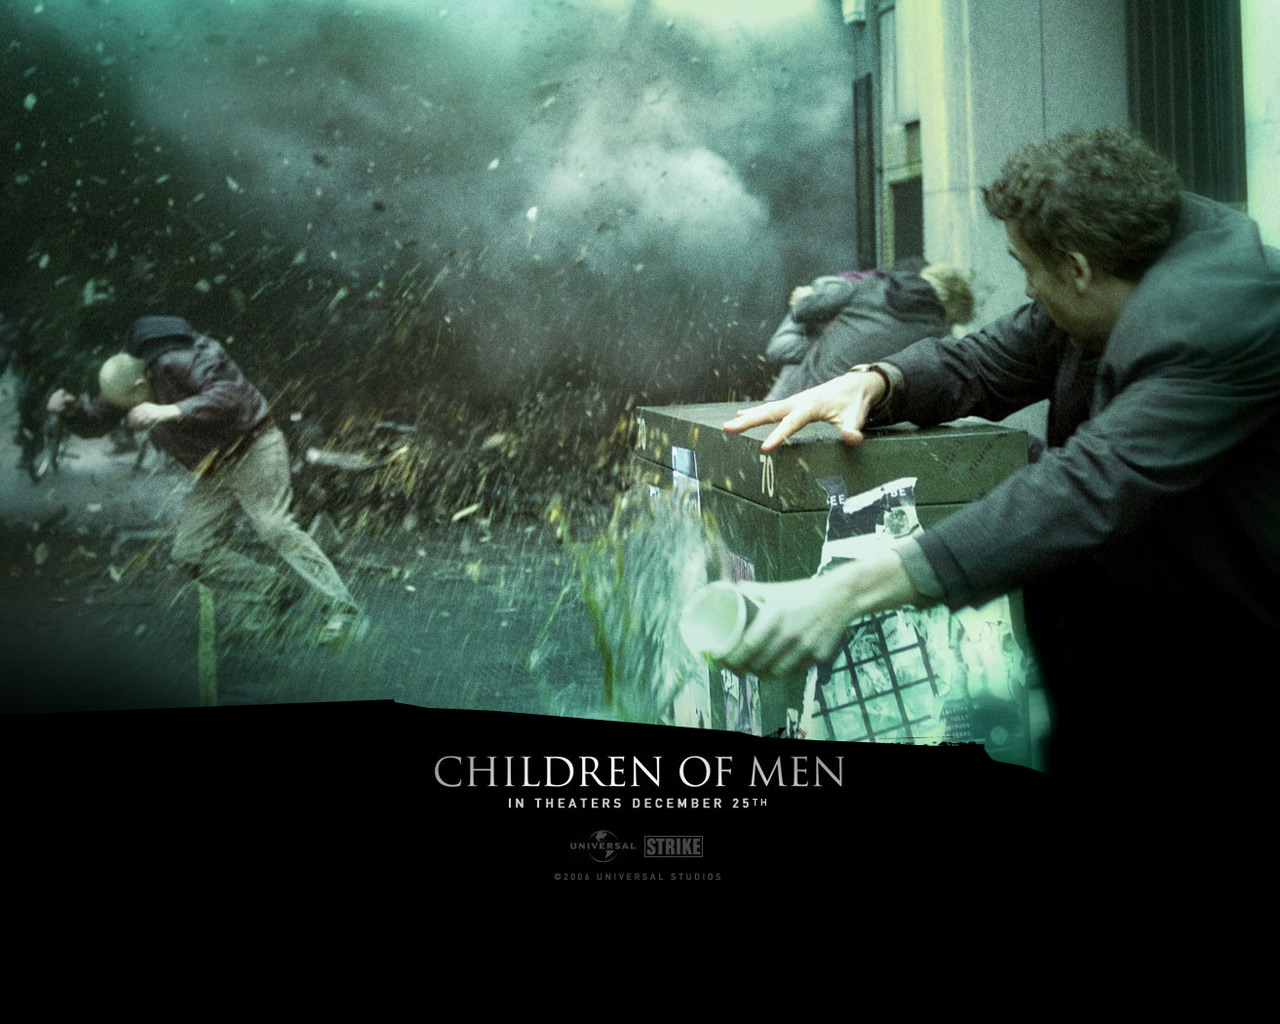 http://1.bp.blogspot.com/_EQKlgPvurNc/SxWFK14anUI/AAAAAAAAAEA/iIkBB9ursro/s1600/Clive_Owen_in_Children_of_Men_Wallpaper_11_1024.jpg